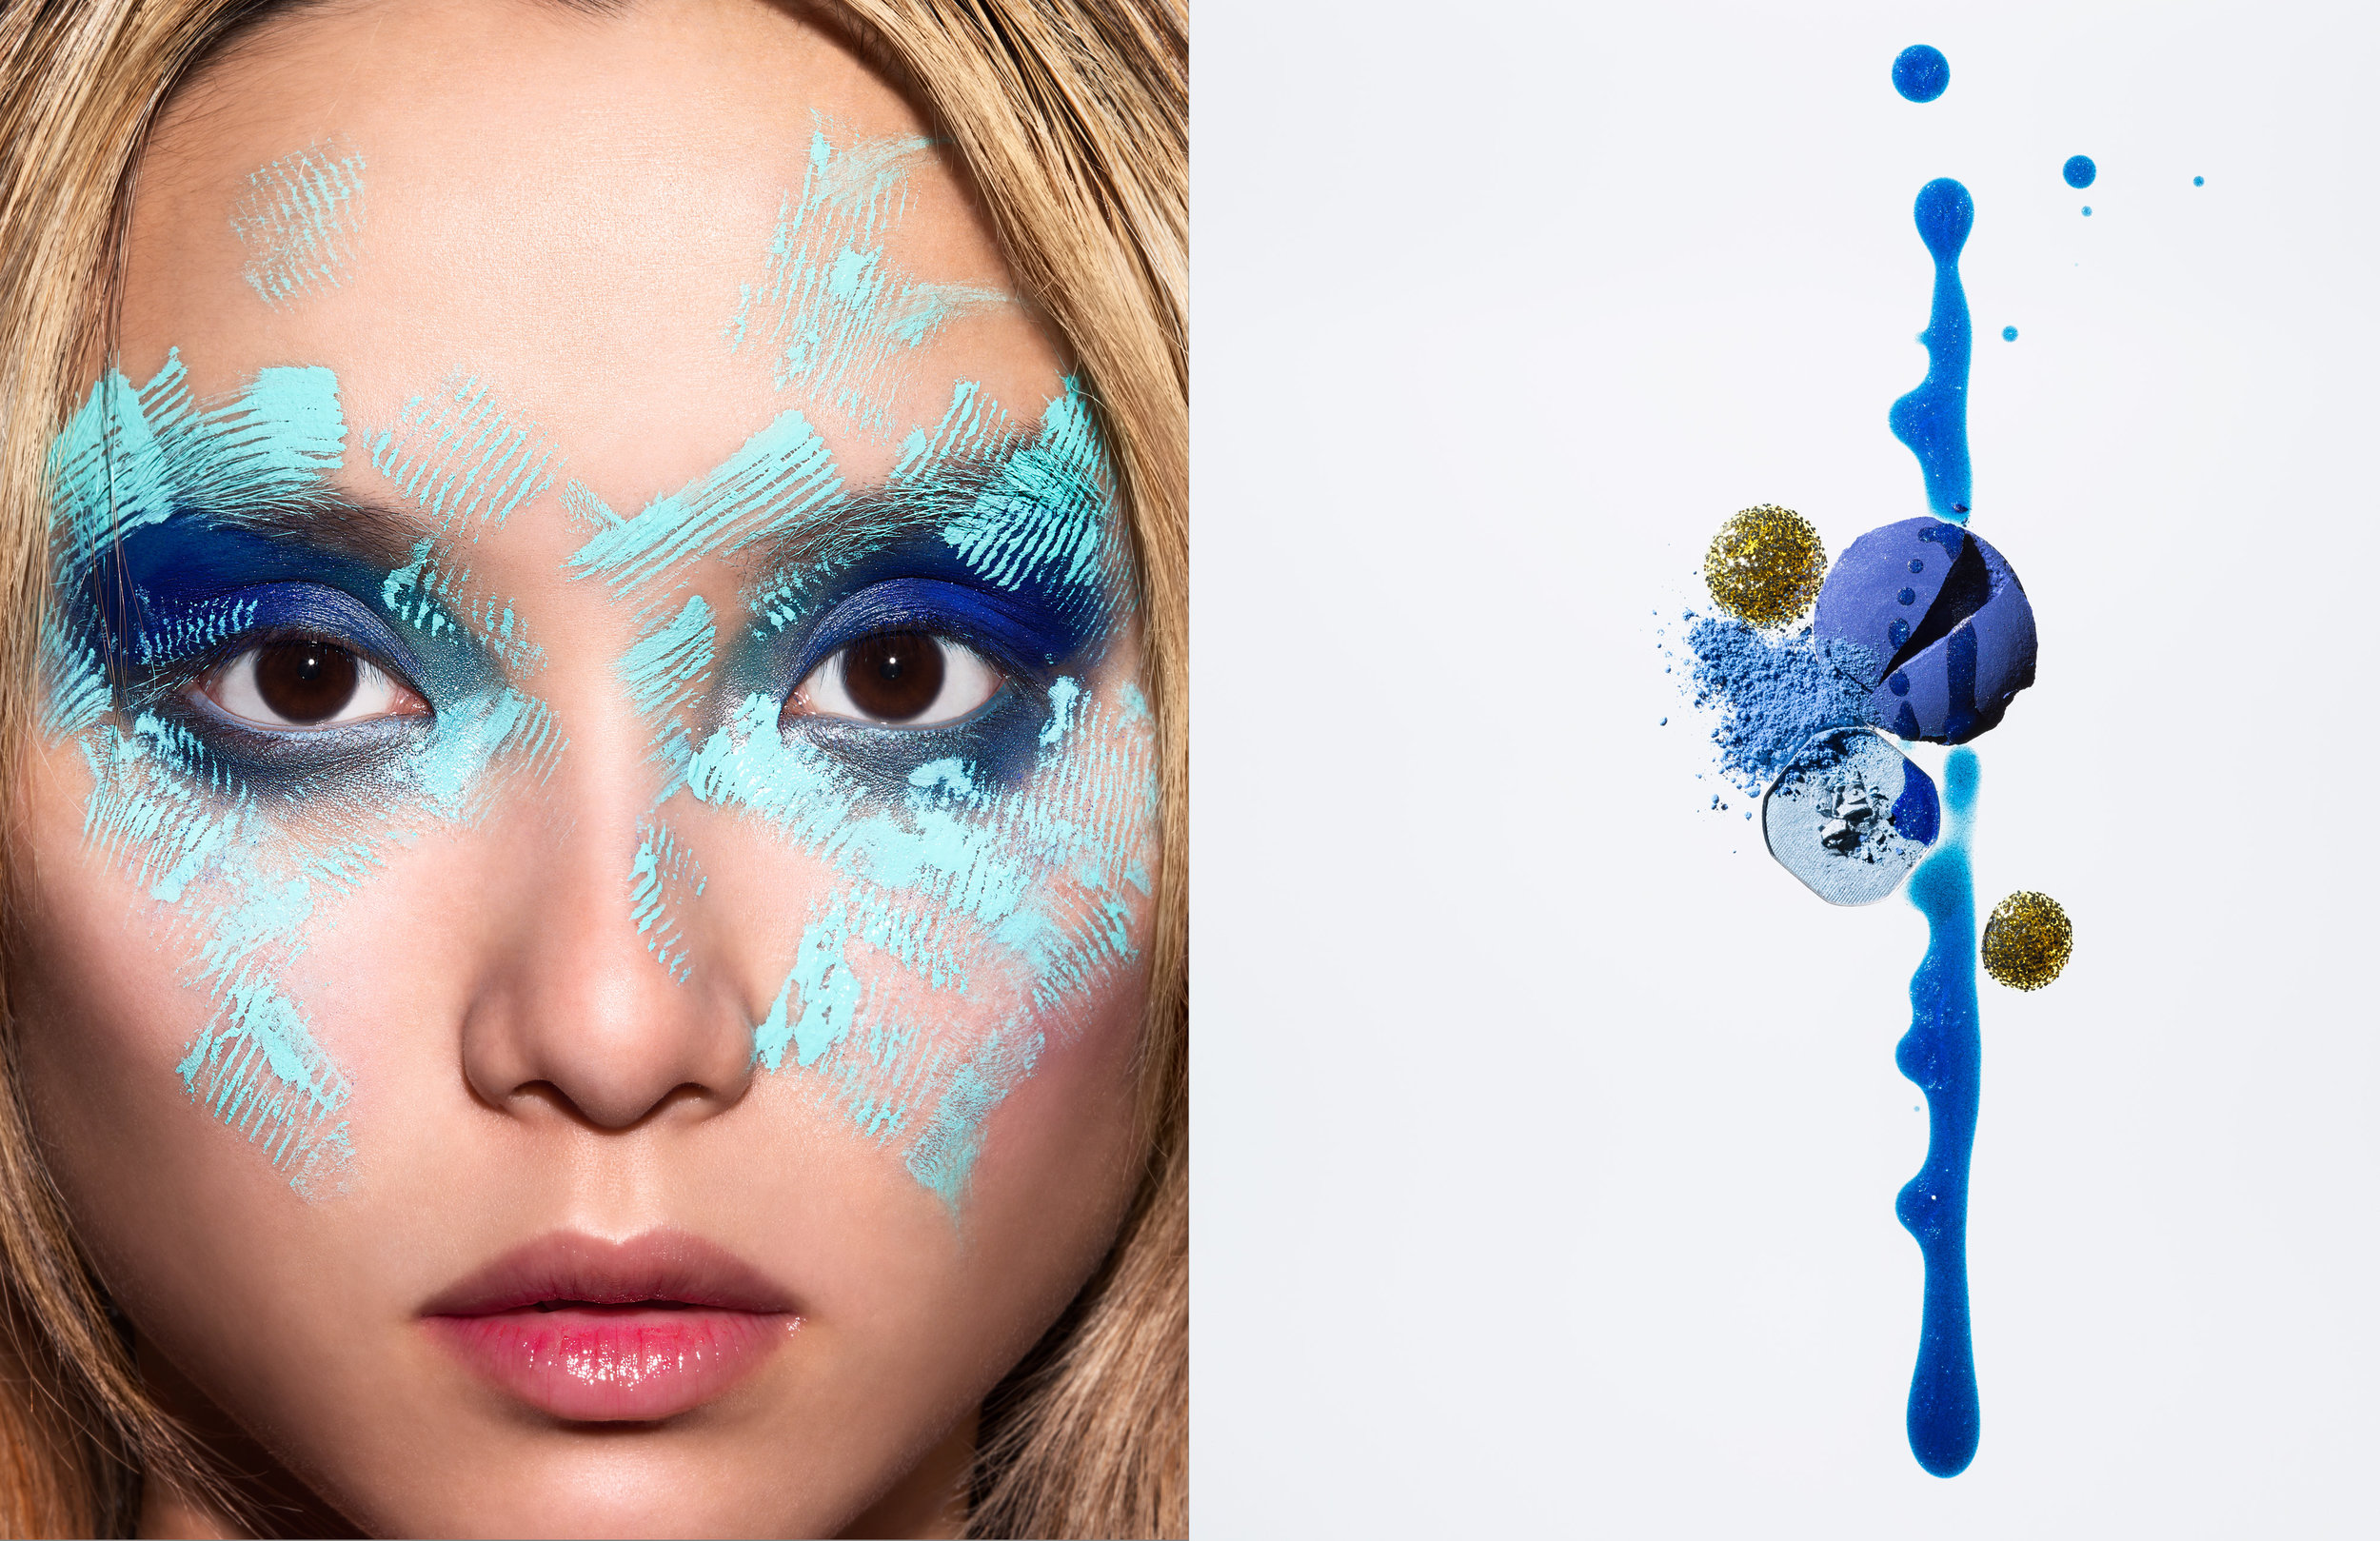 paris-vogue-cosmetics-blue-makeup-beauty-photographer-advertising-photography-stan-musilek